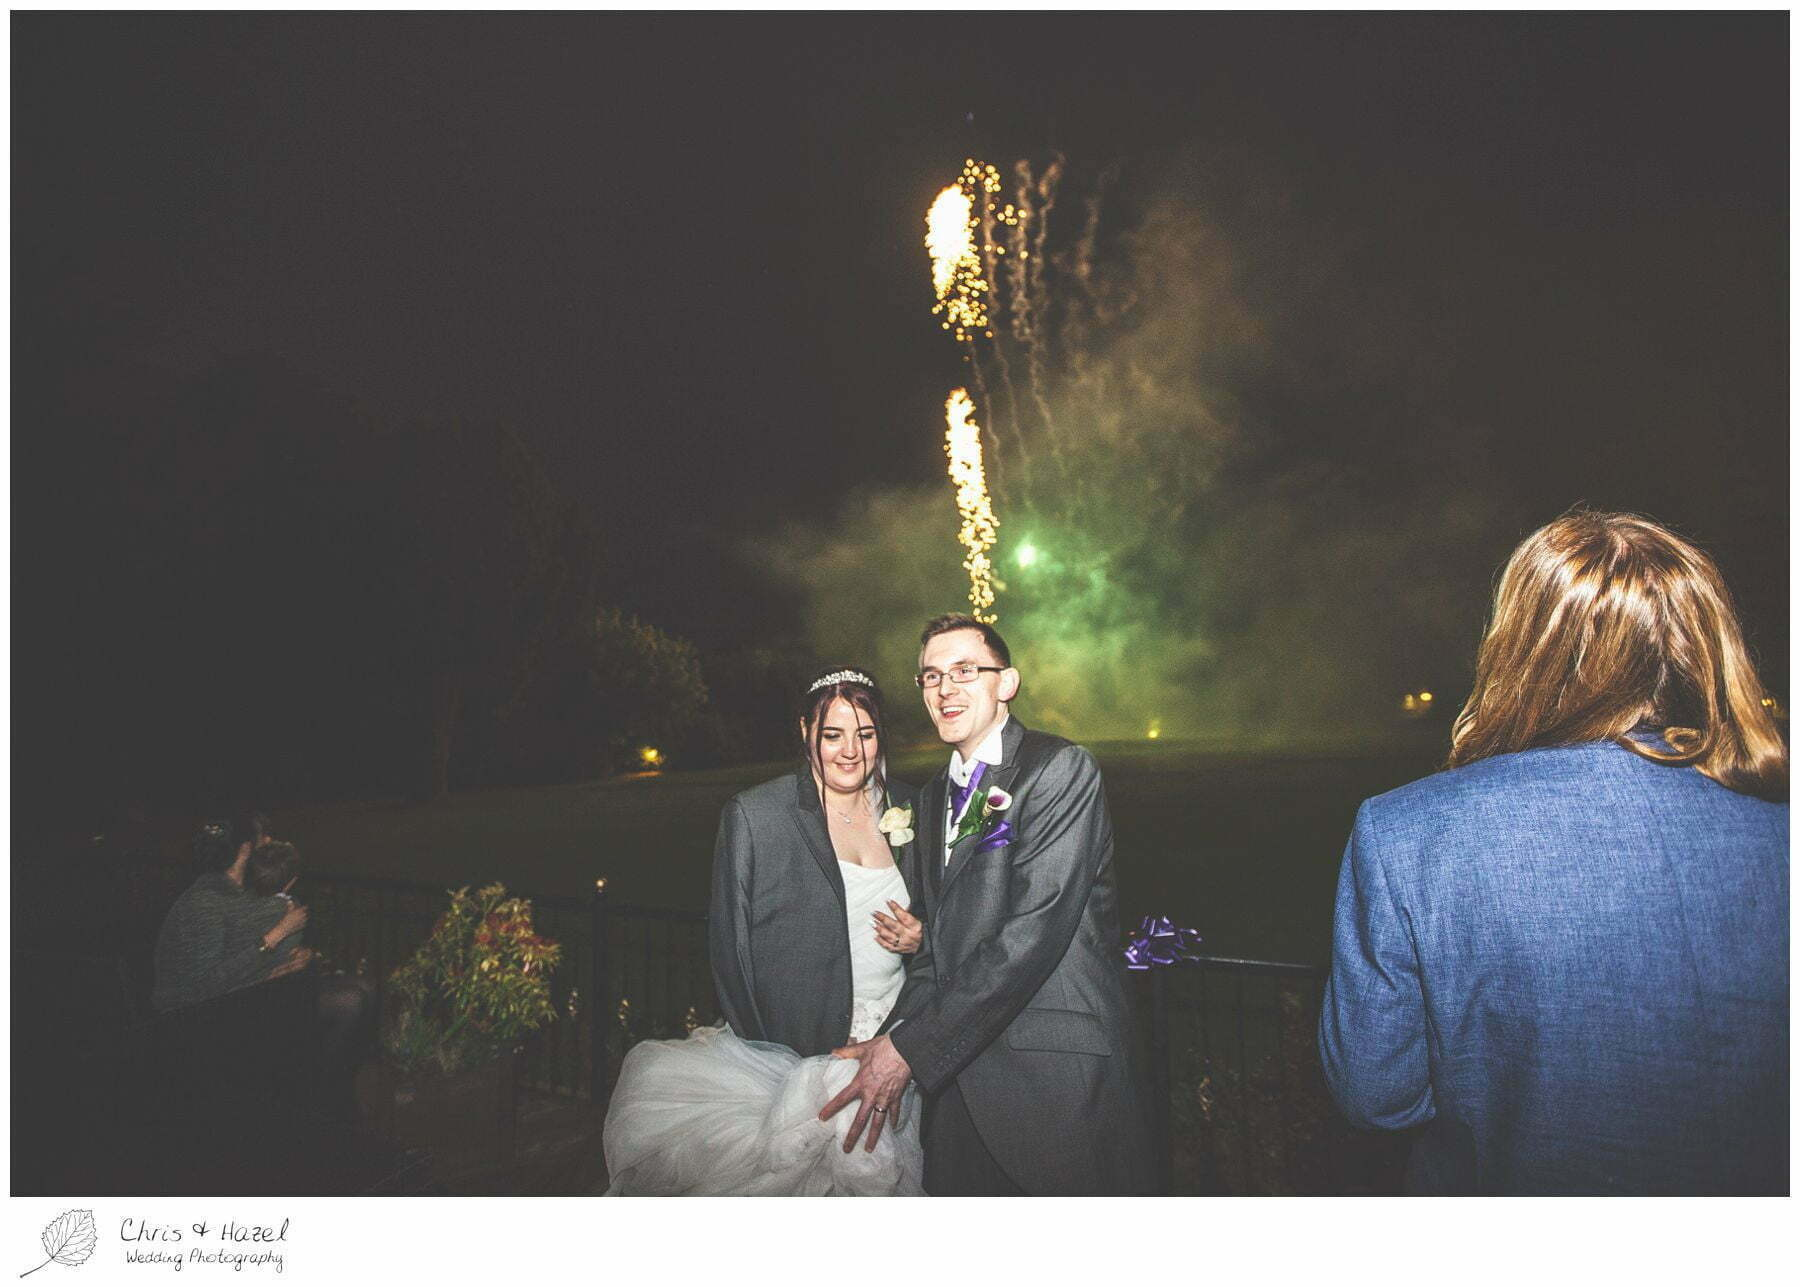 wedding fireworks, bagden hall wedding venue, documentary wedding photography, denny dale, huddersfield, Wedding Photographer, Bagden Hall, Wedding Photography, Chris and Hazel Wedding Photography, Alex tomenson, Vicky hunt